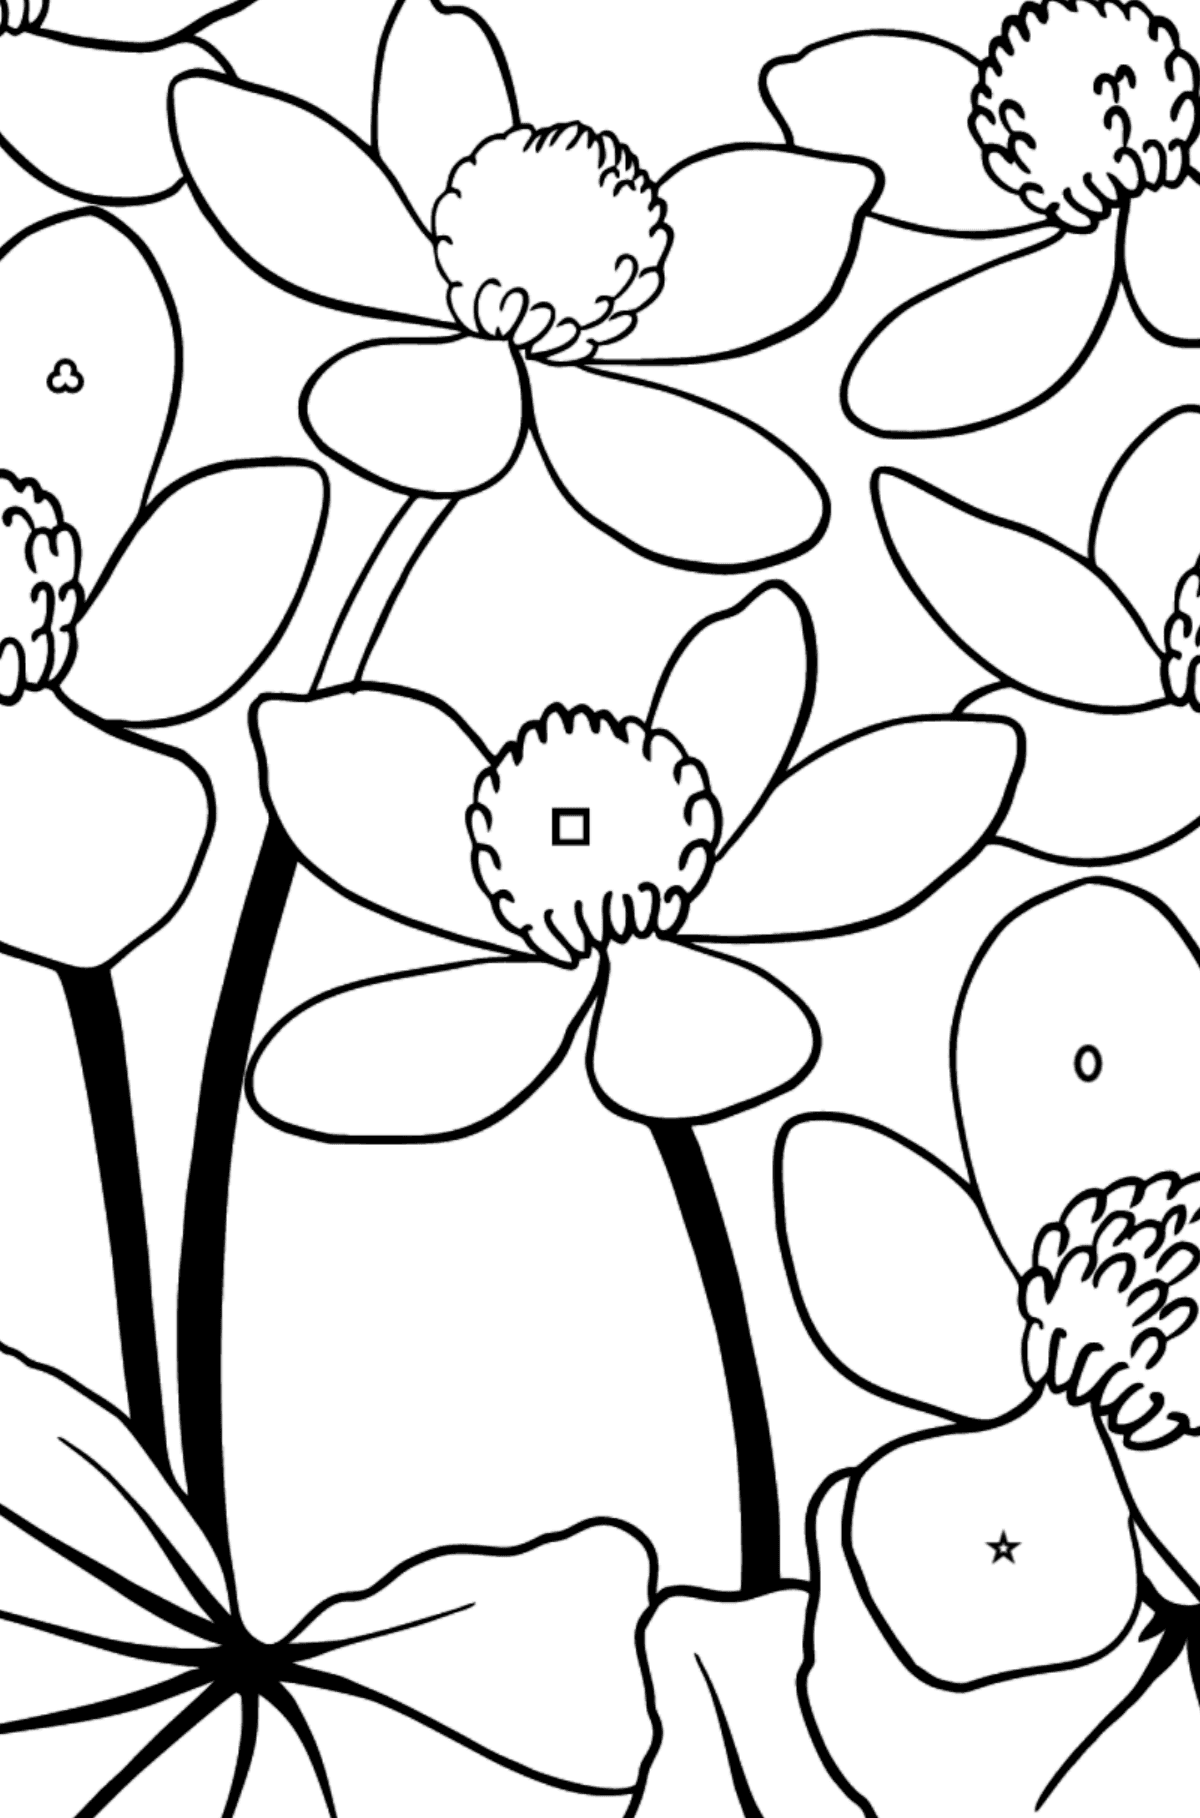 Flower Coloring Page - A Yellow and Red Marsh Marigold - Coloring by Geometric Shapes for Kids